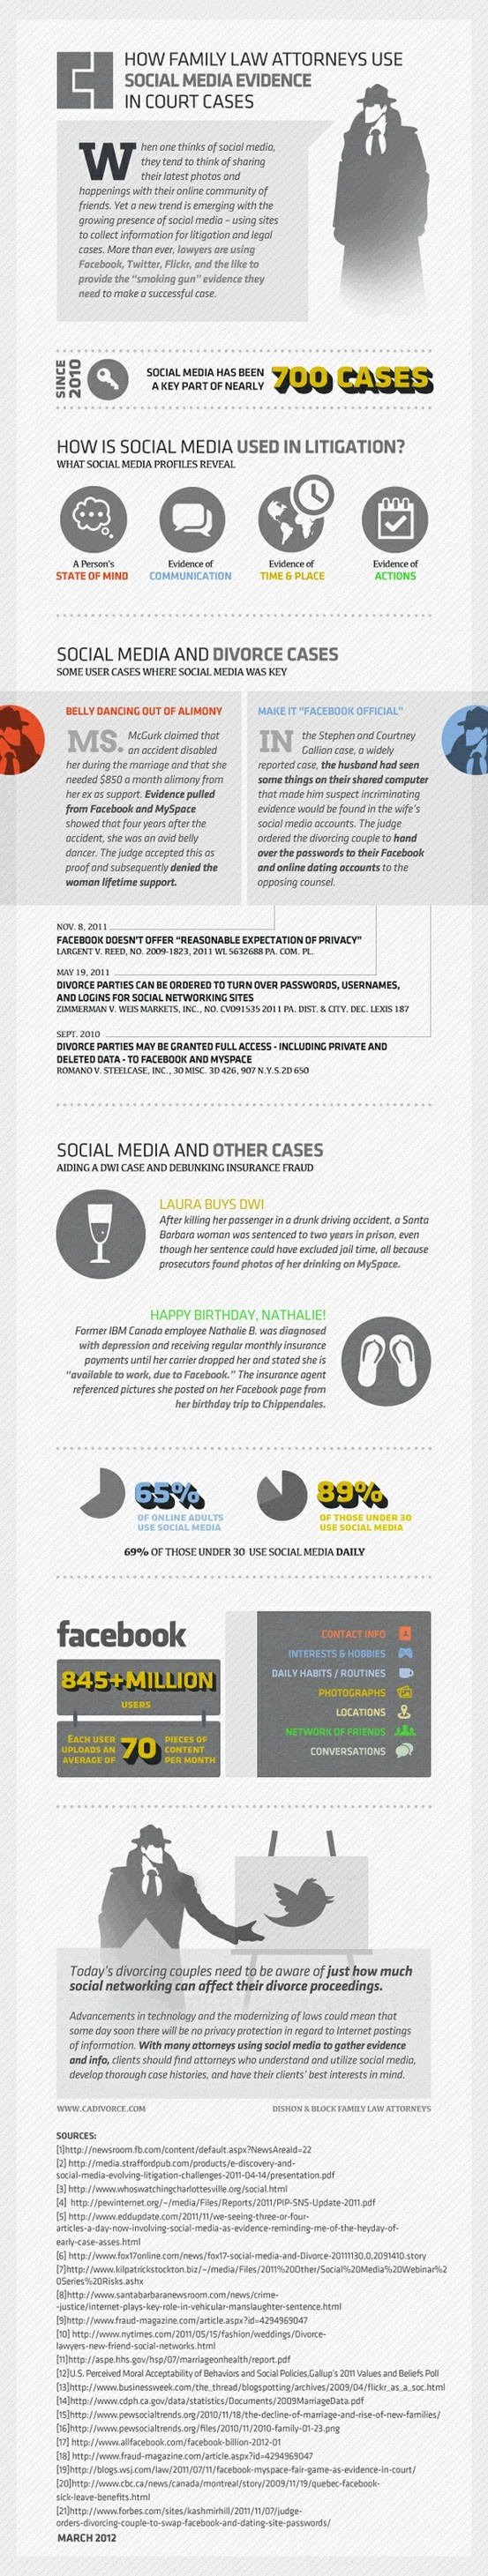 How family law attorneys use #socialmedia evidence in court cases #infographic